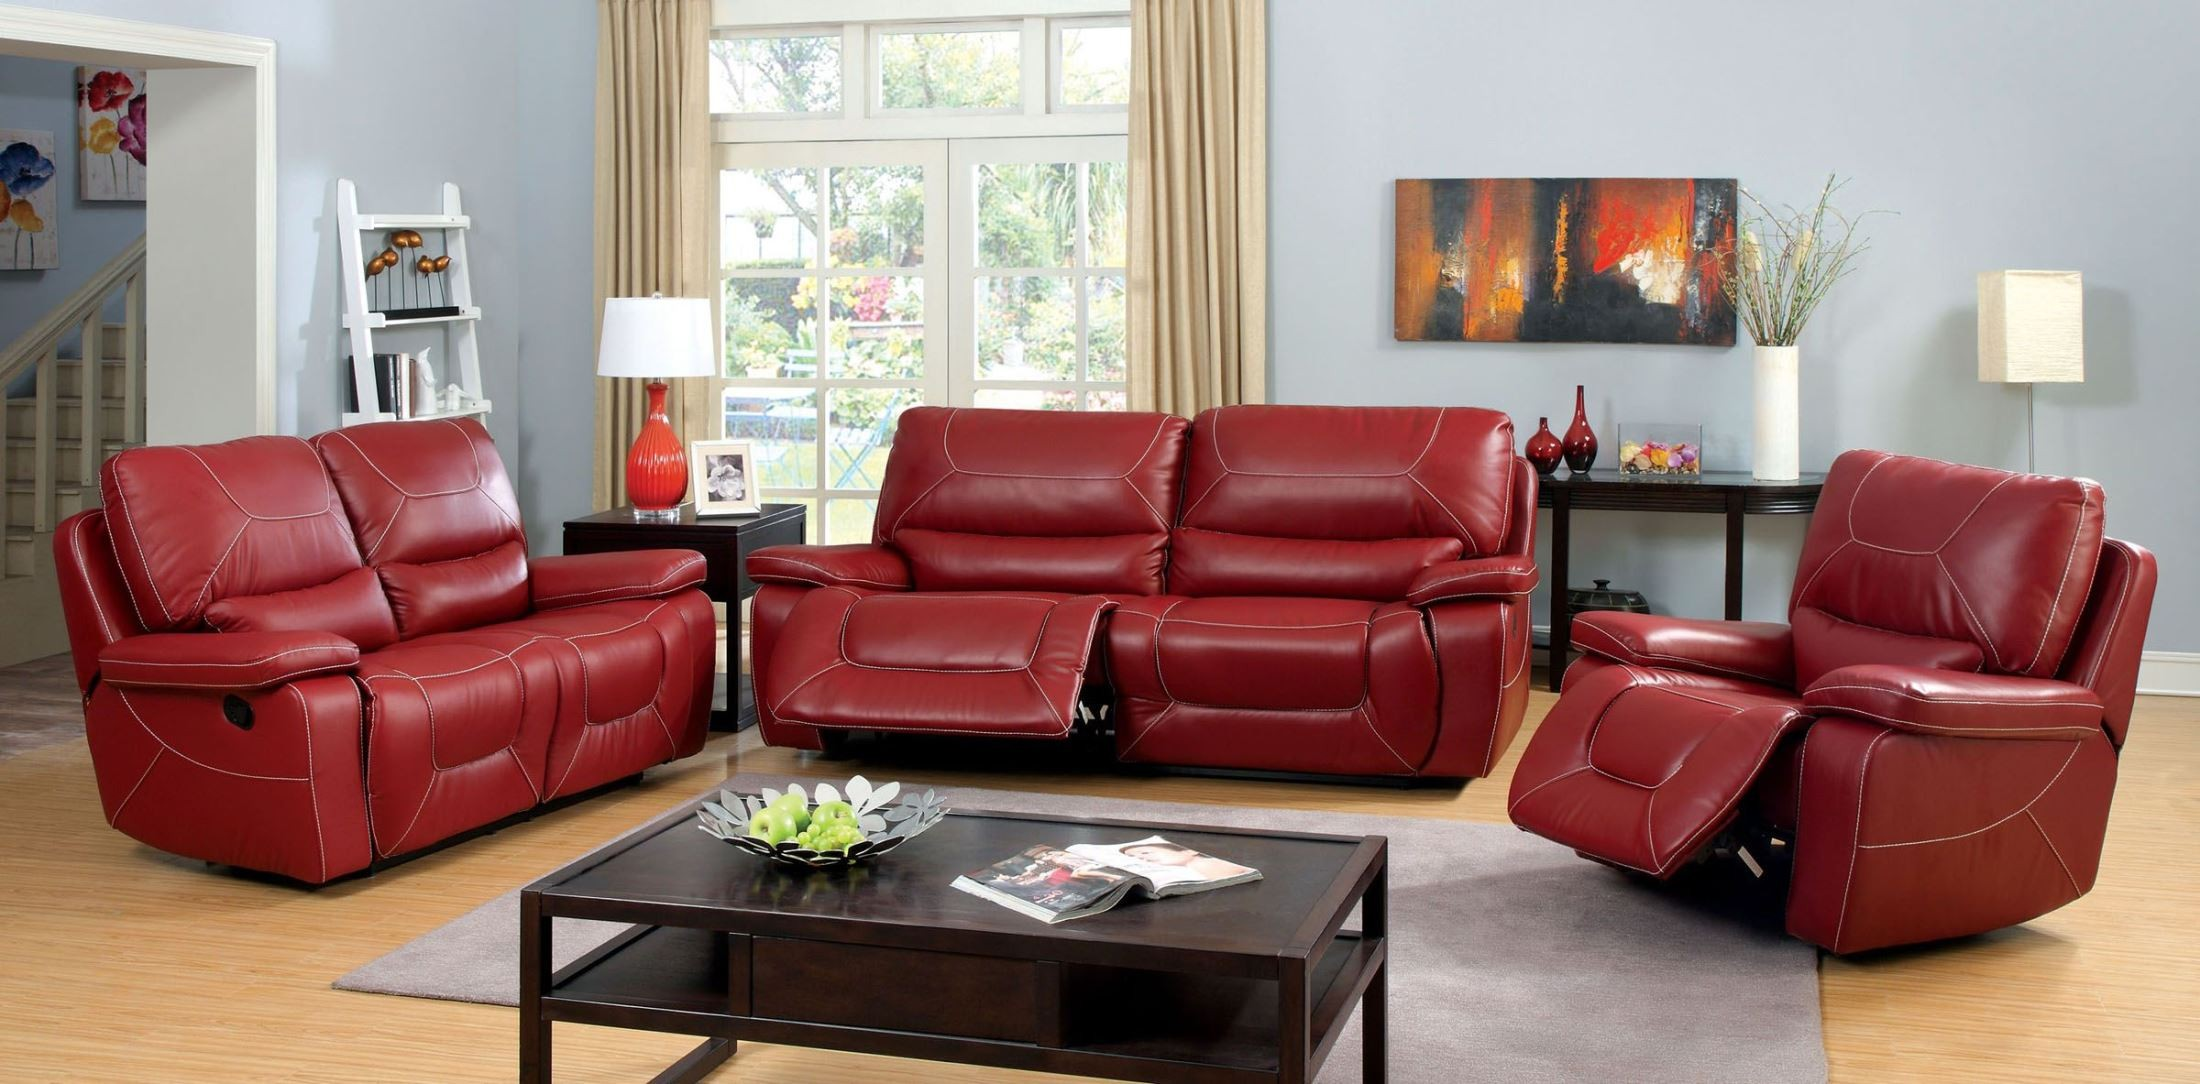 Newburg Red Reclining Living Room Set From Furniture Of America CM6814RD SF